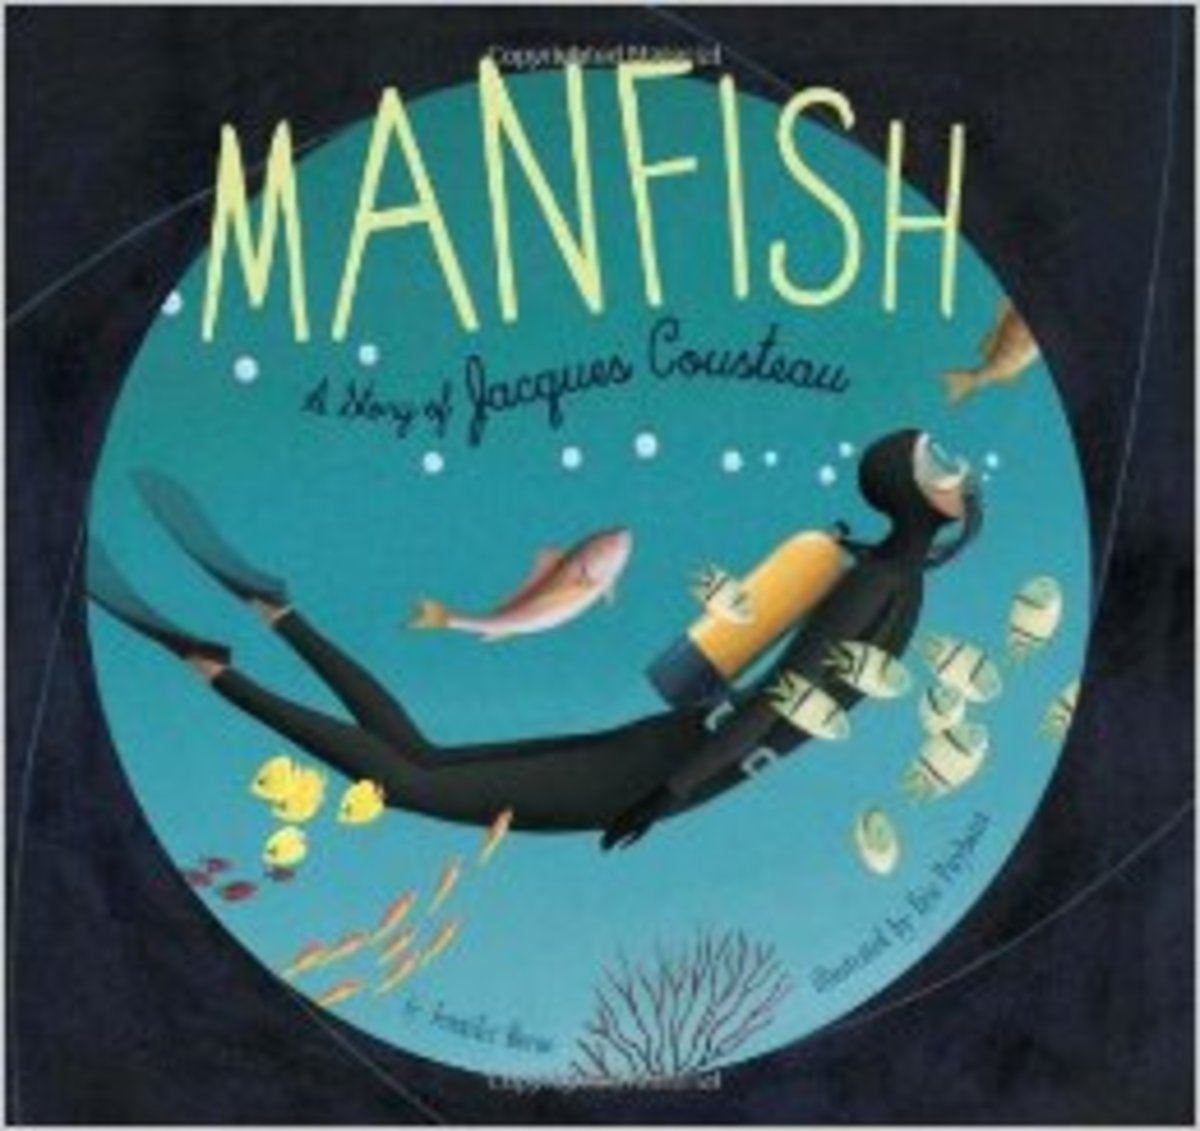 Manfish: A Story of Jacques Cousteau by Jennifer Berne - All images are from amazon.com.